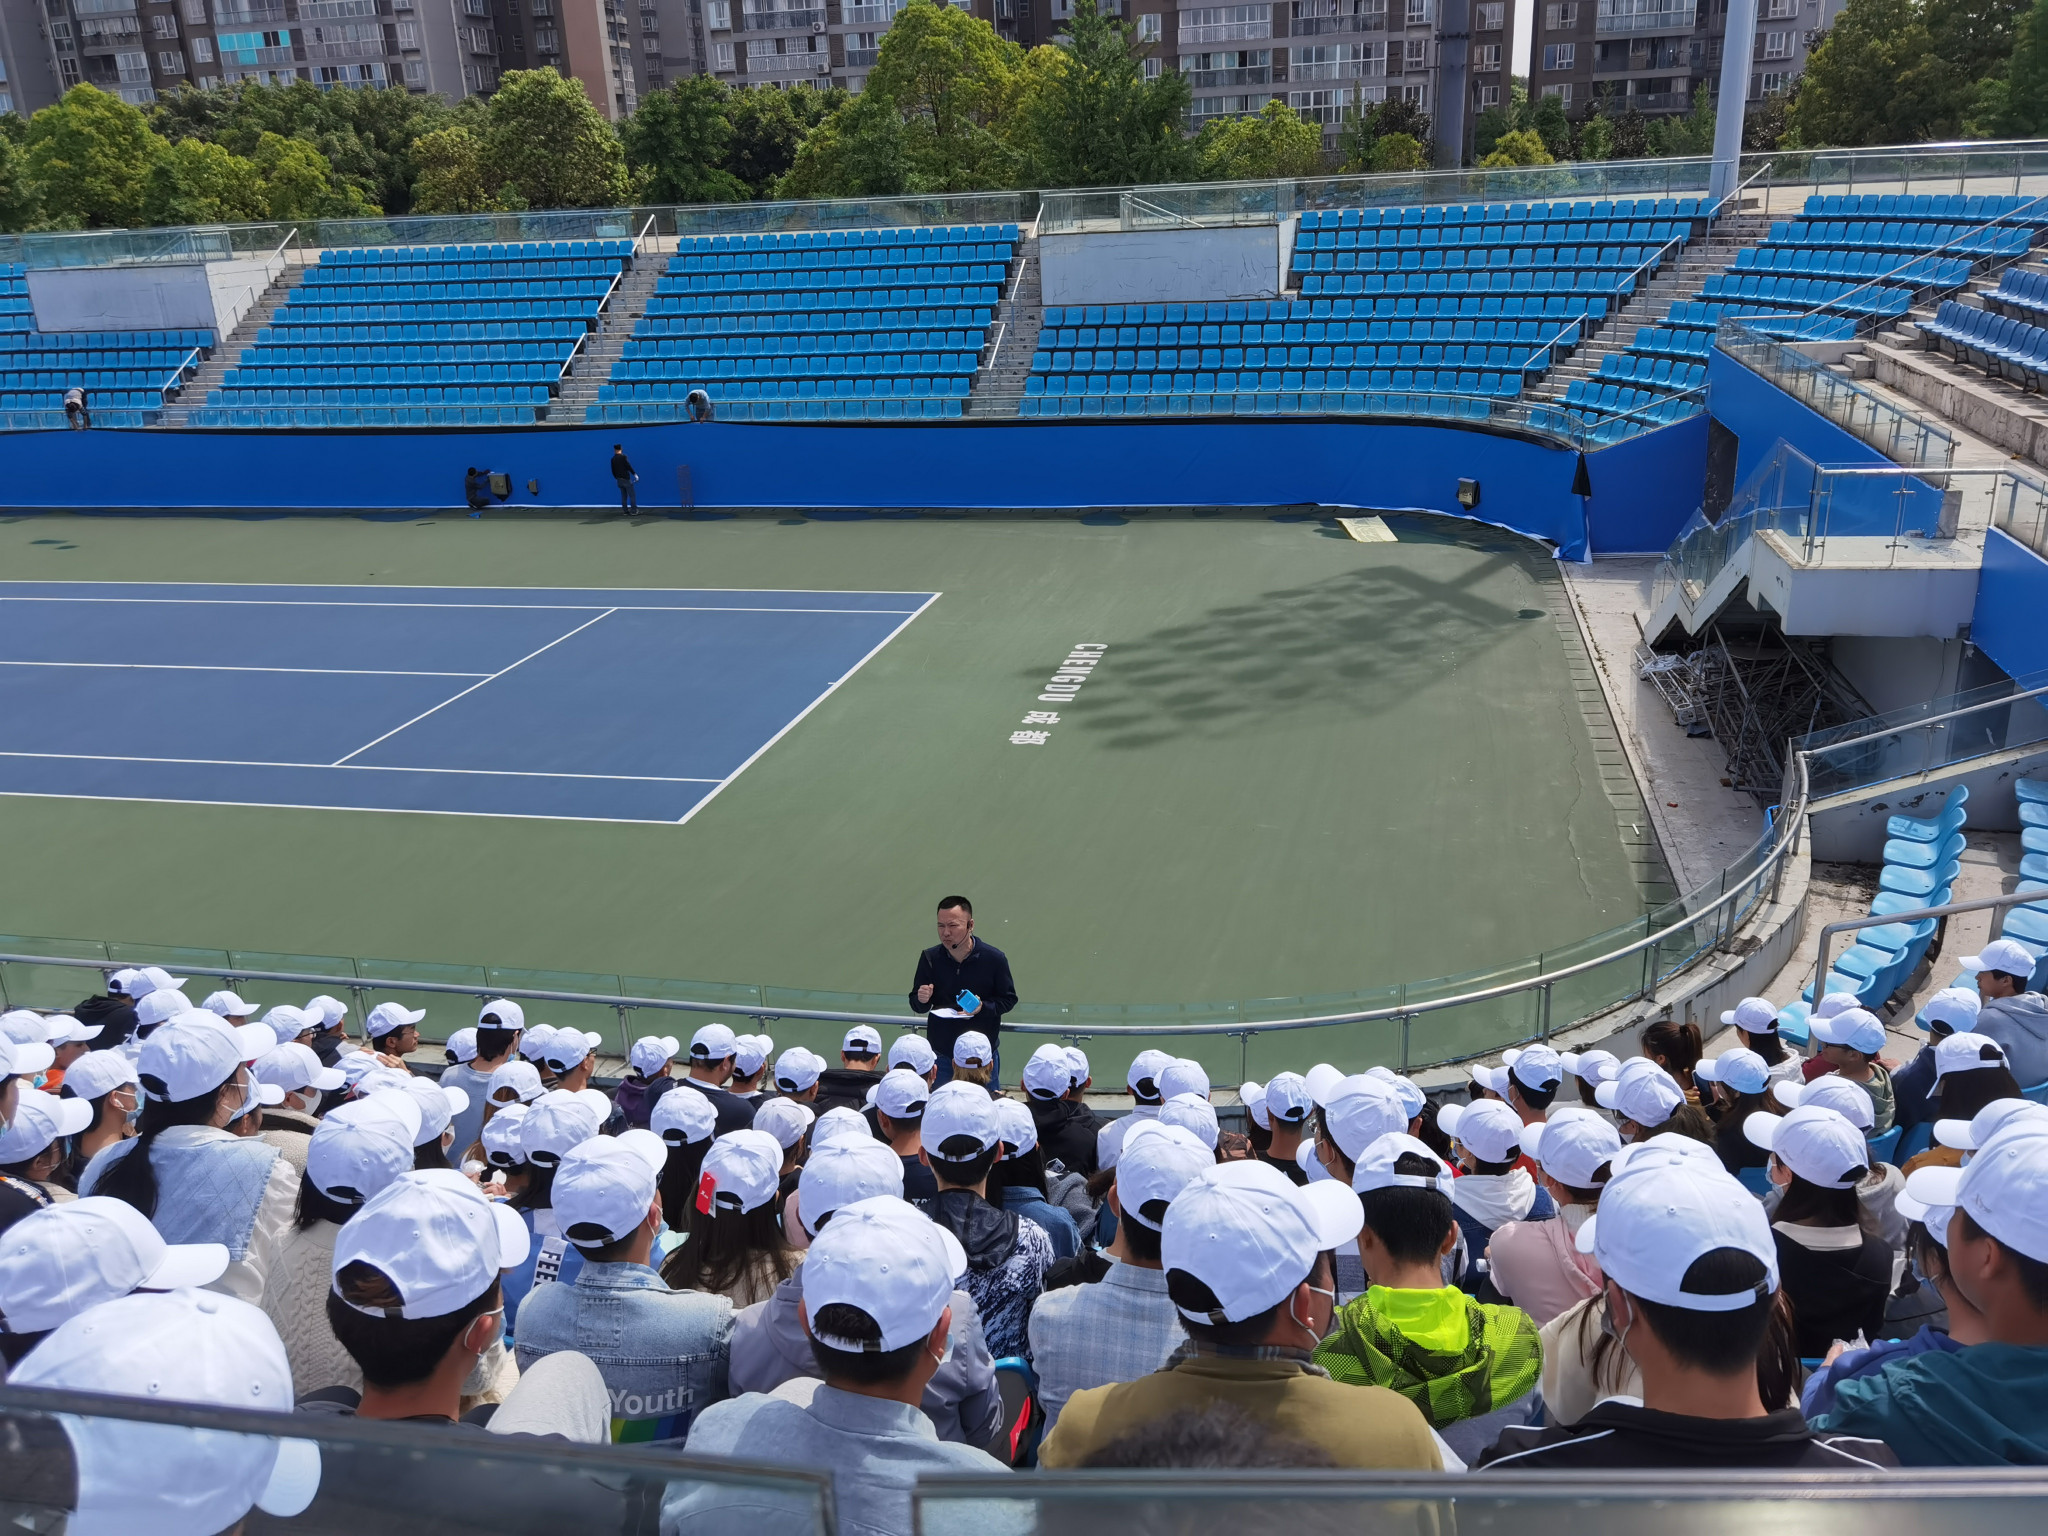 Chengdu 2021 volunteers appear for first time at local tennis event